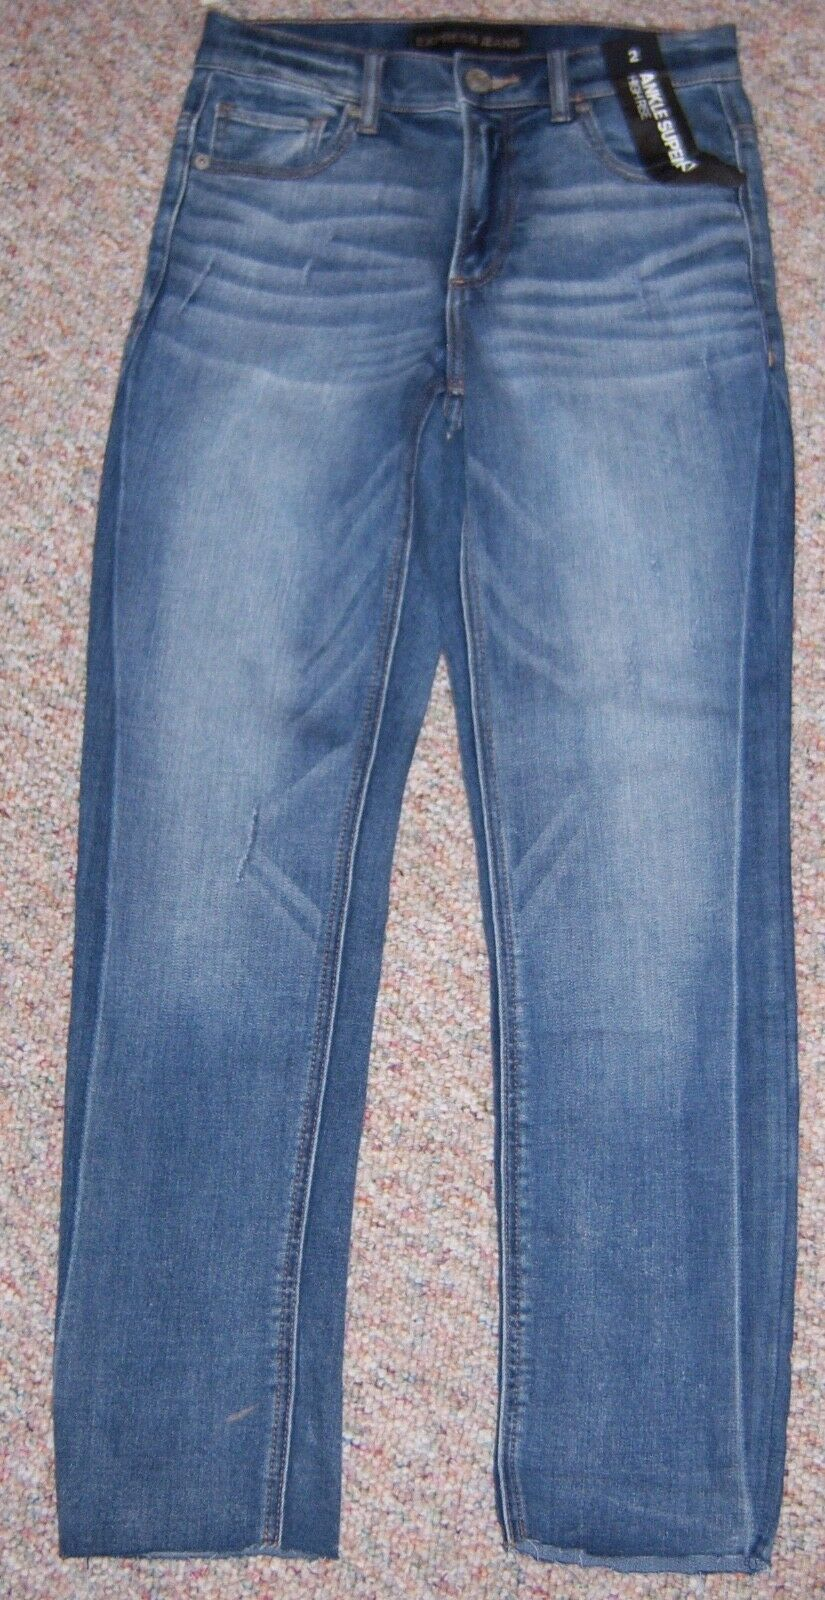 EXPRESS bluee Denim High Rise Ankle Super Skinny Jeans Size 2 Inseam 28 NWT